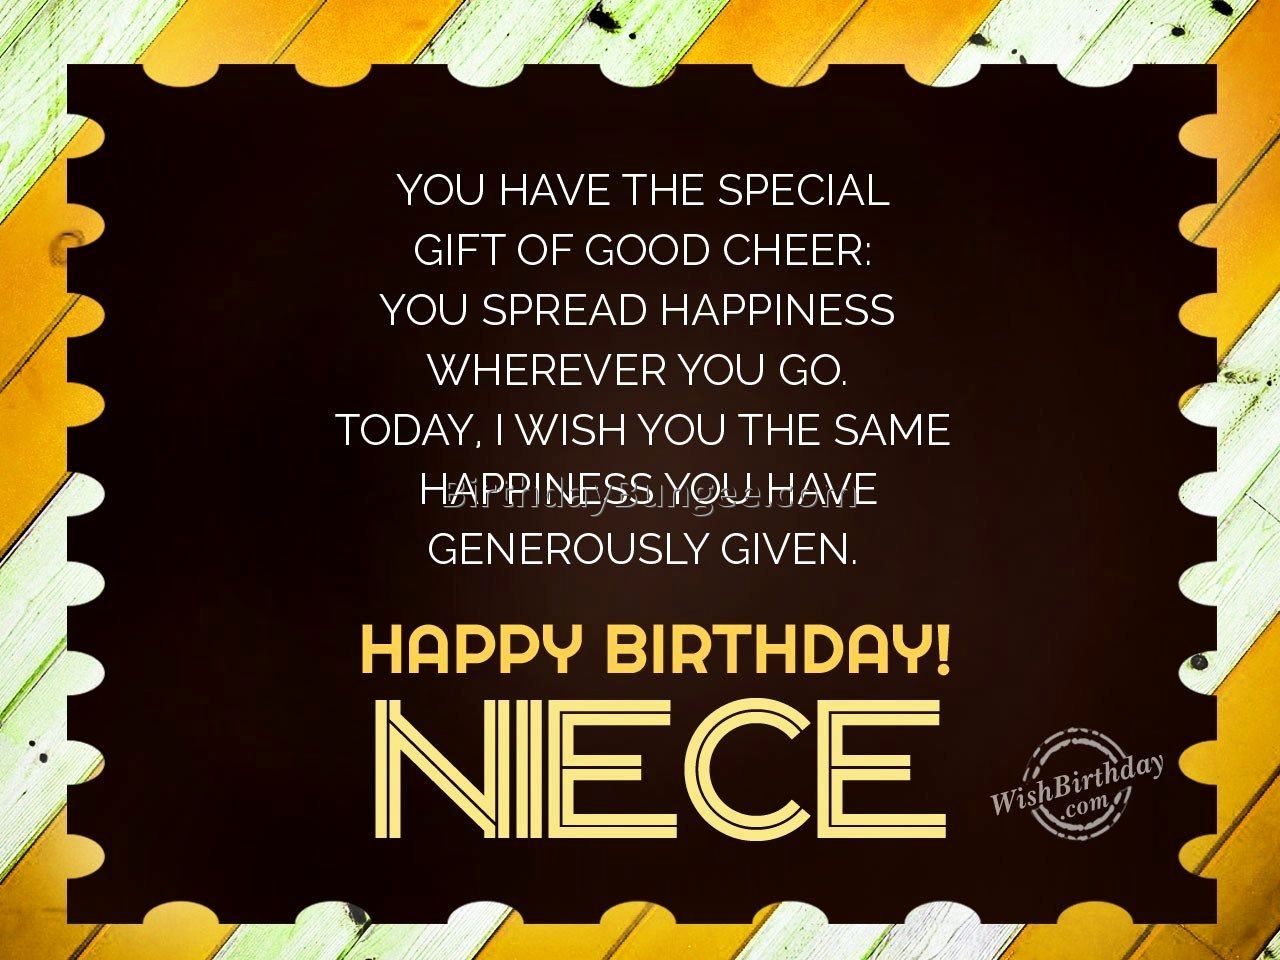 birthday message for 3 year old ; happy-birthday-wishes-for-3-years-old-fresh-birthday-wishes-for-my-niece-3-of-happy-birthday-wishes-for-3-years-old